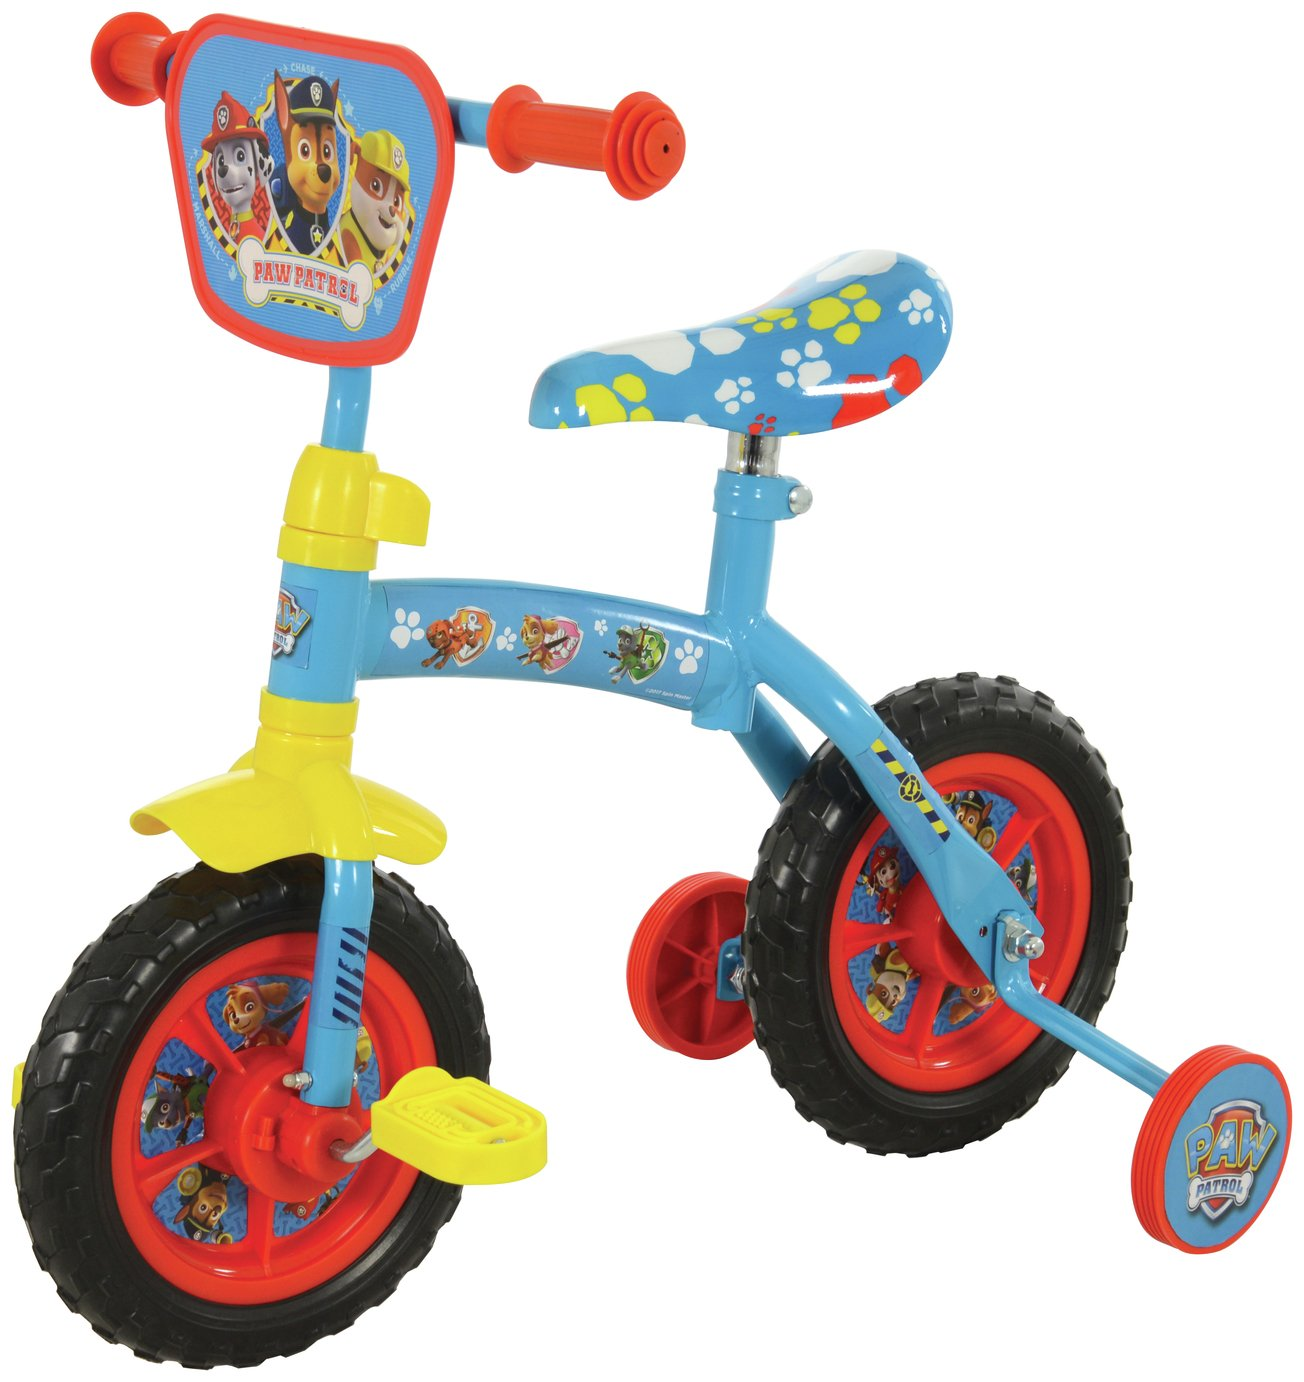 PAW Patrol 2 in 1 Training Bike